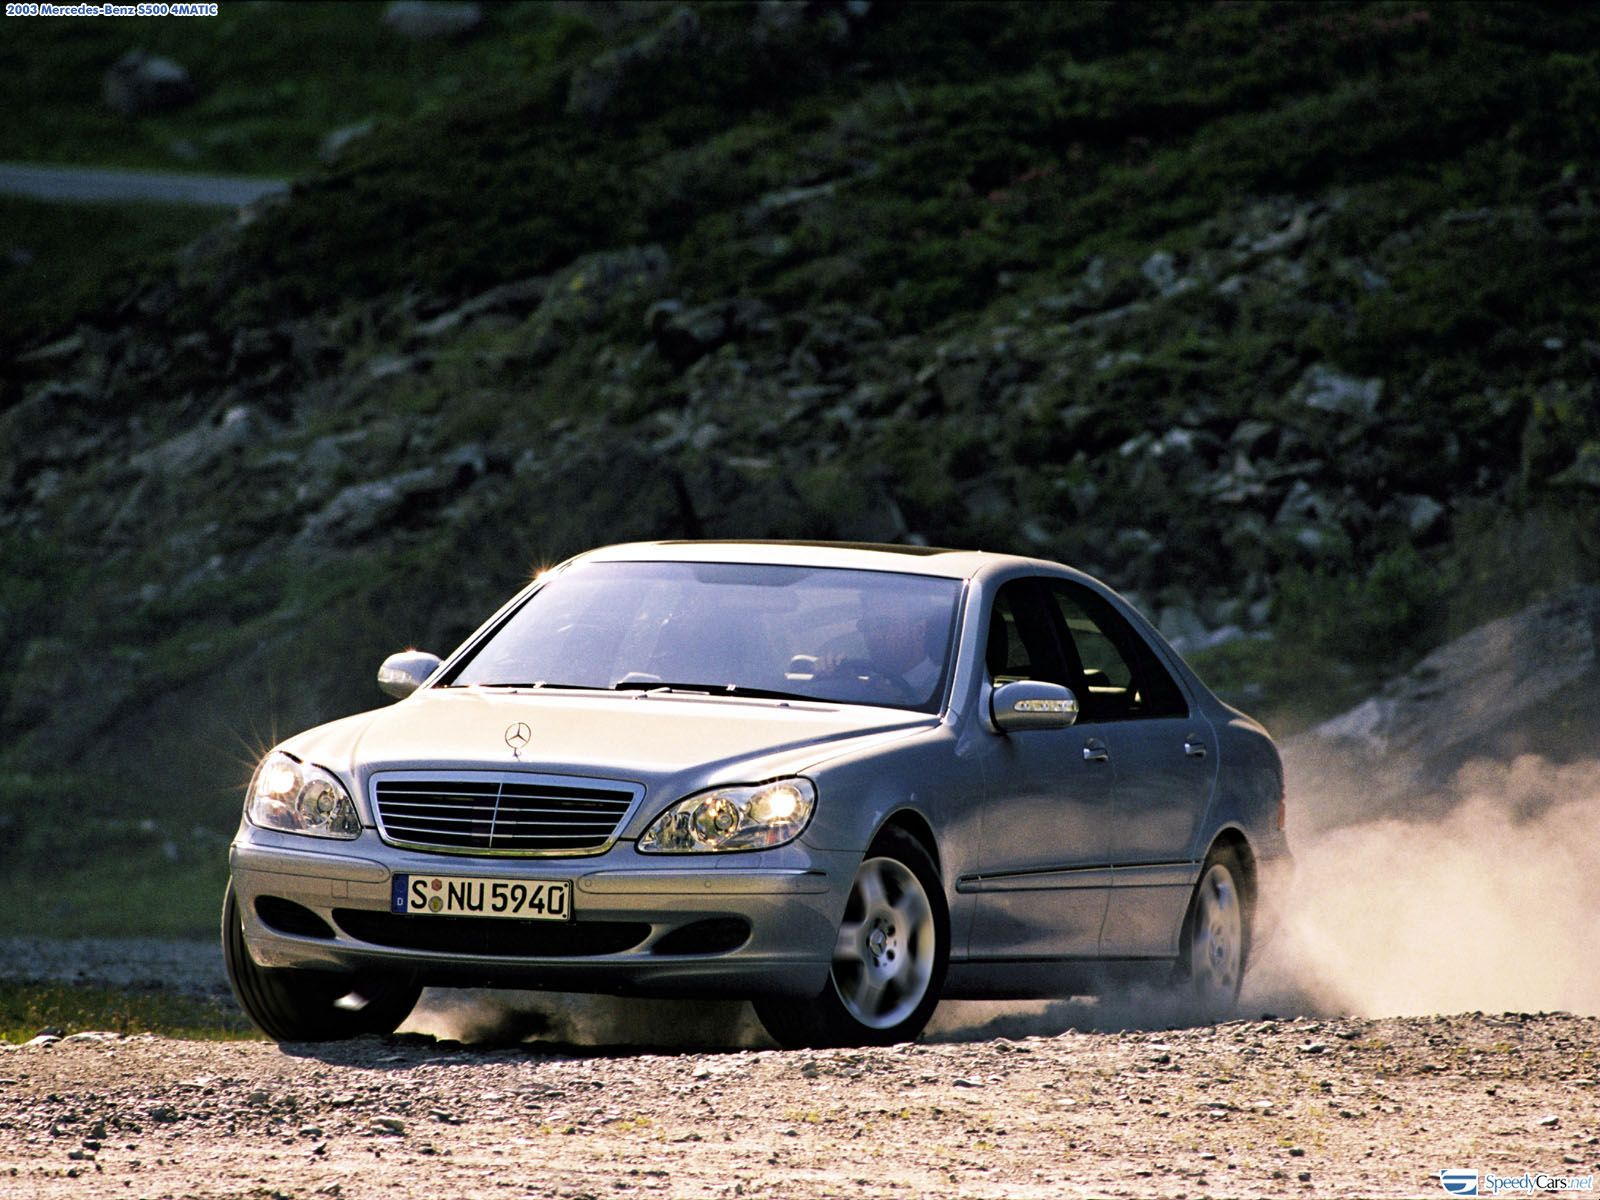 Mercedes-Benz S-Class W220 photos - PhotoGallery with 18 pics| CarsBase.com